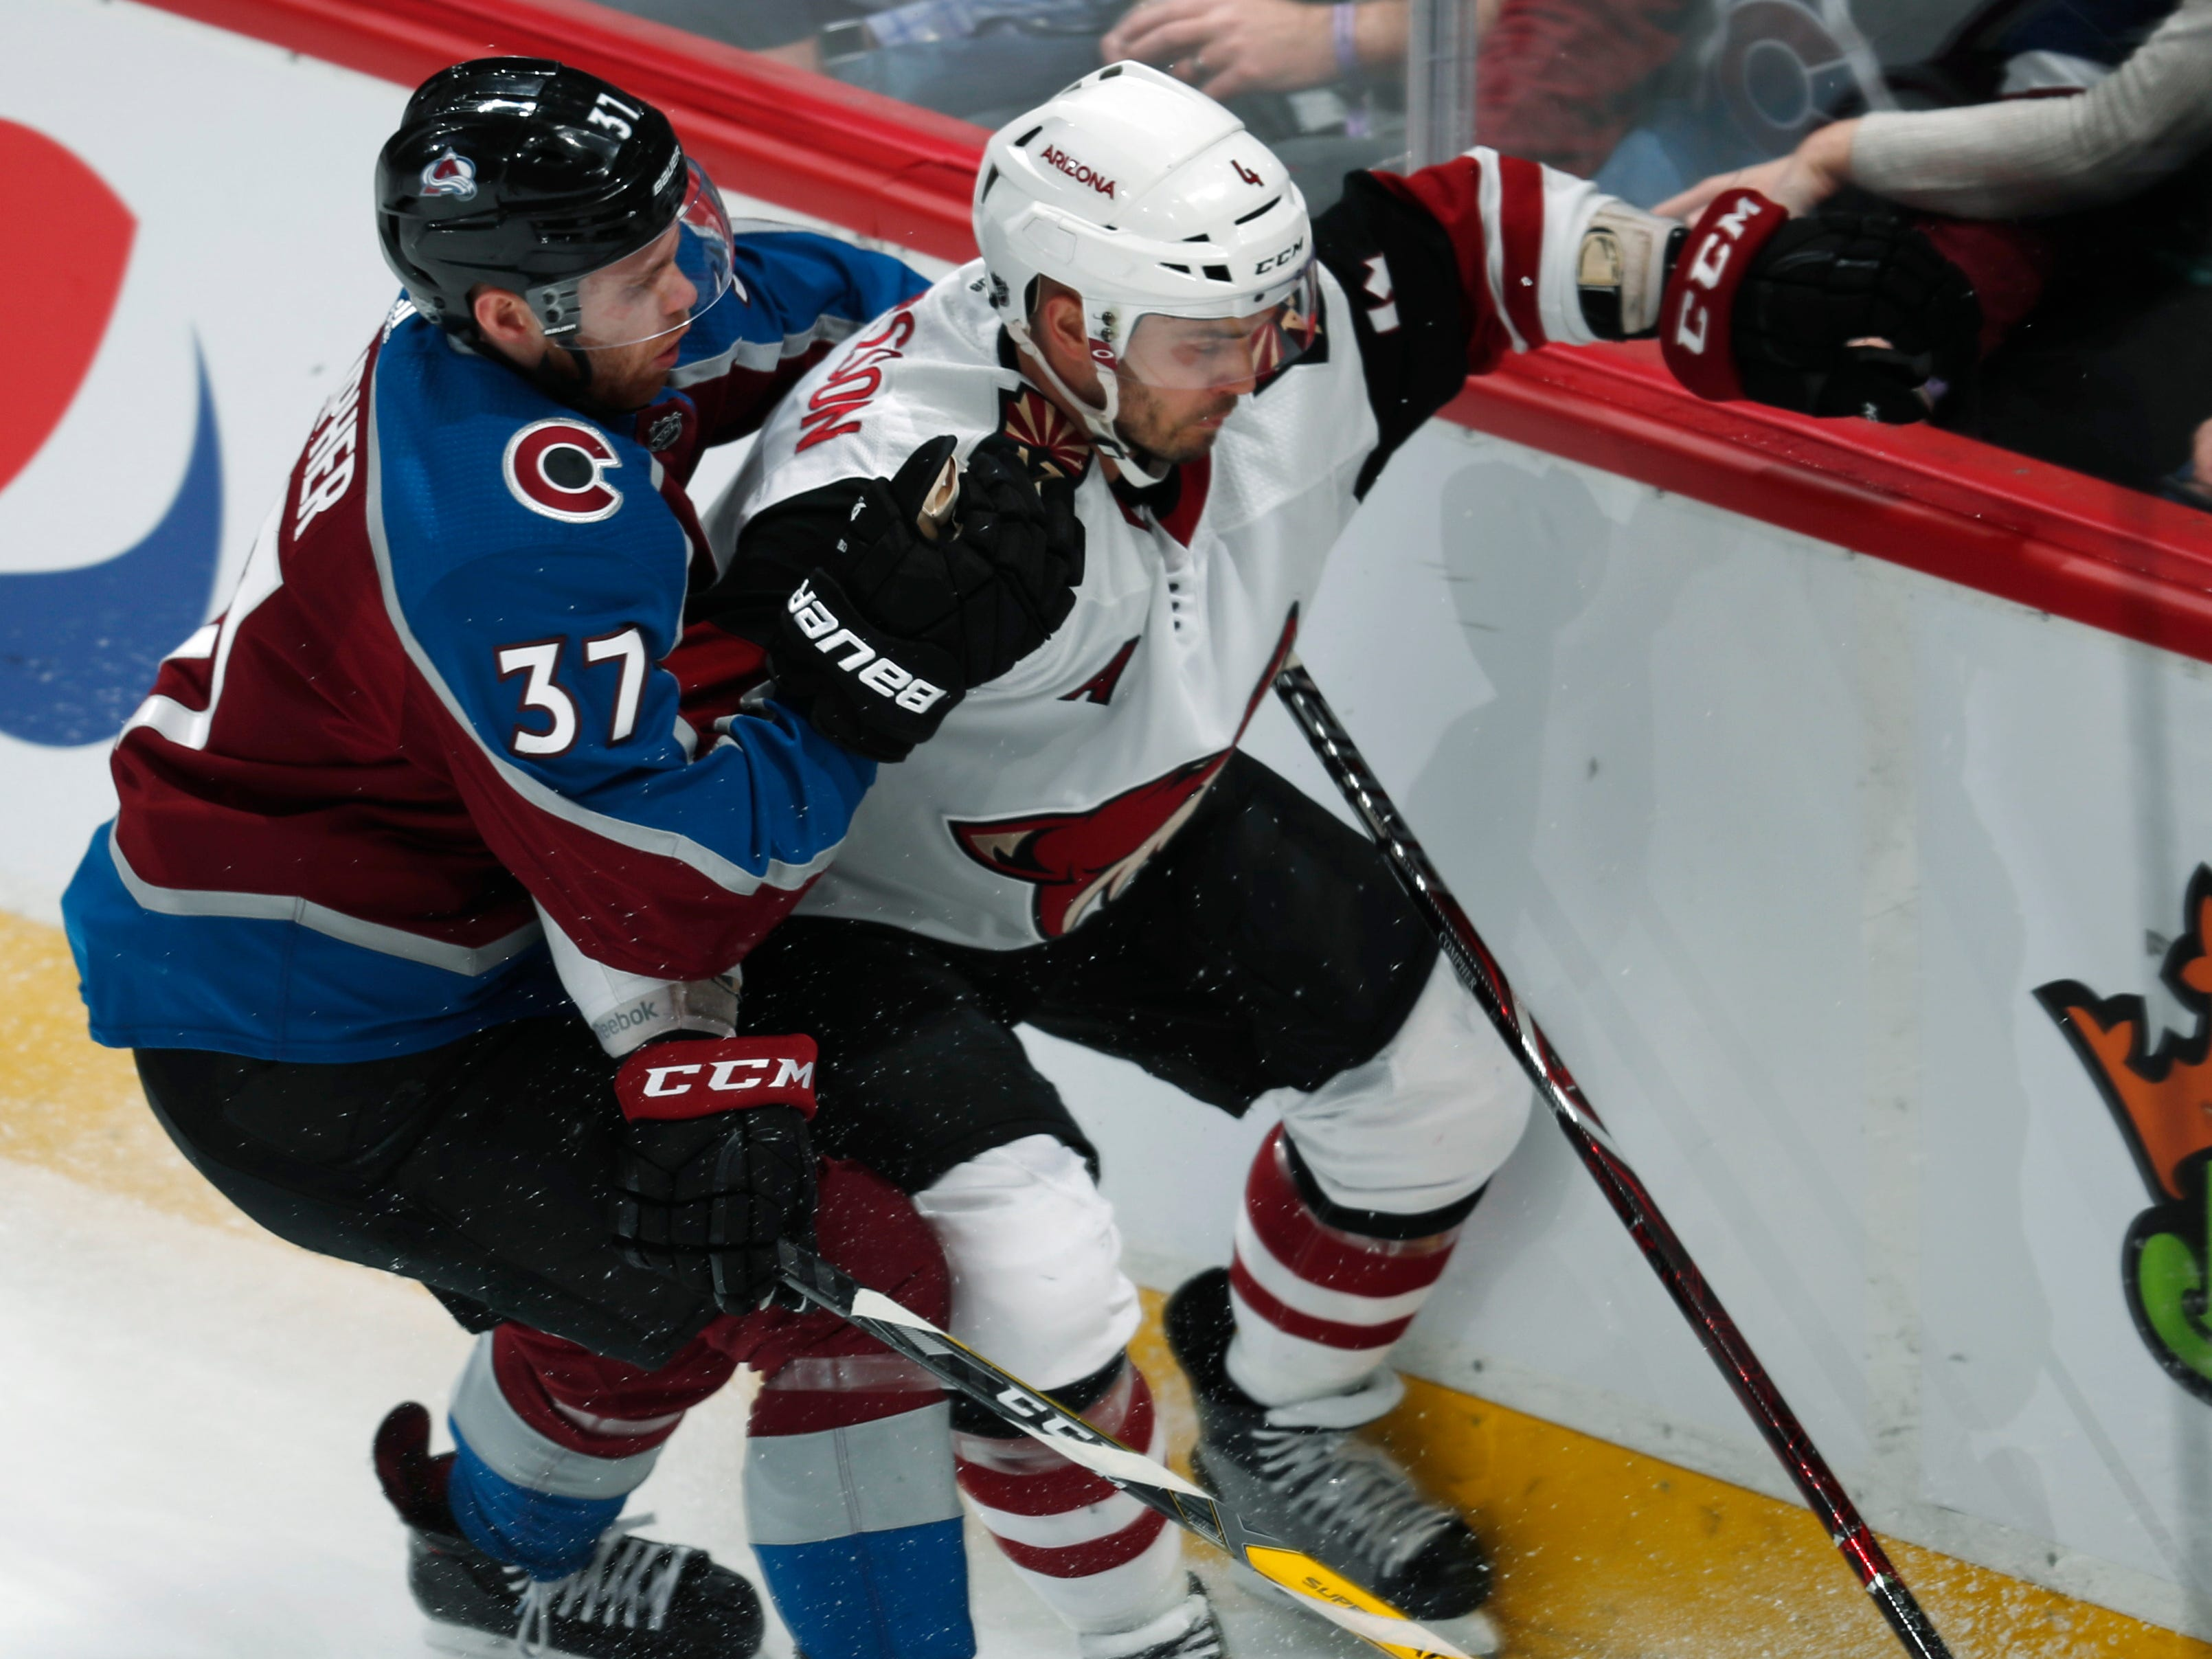 Colorado Avalanche left wing J.T. Compher, left, fights with Arizona Coyotes defenseman Niklas Hjalmarsson for control of the puck in the first period of an NHL hockey game Friday, March 29, 2019, in Denver.